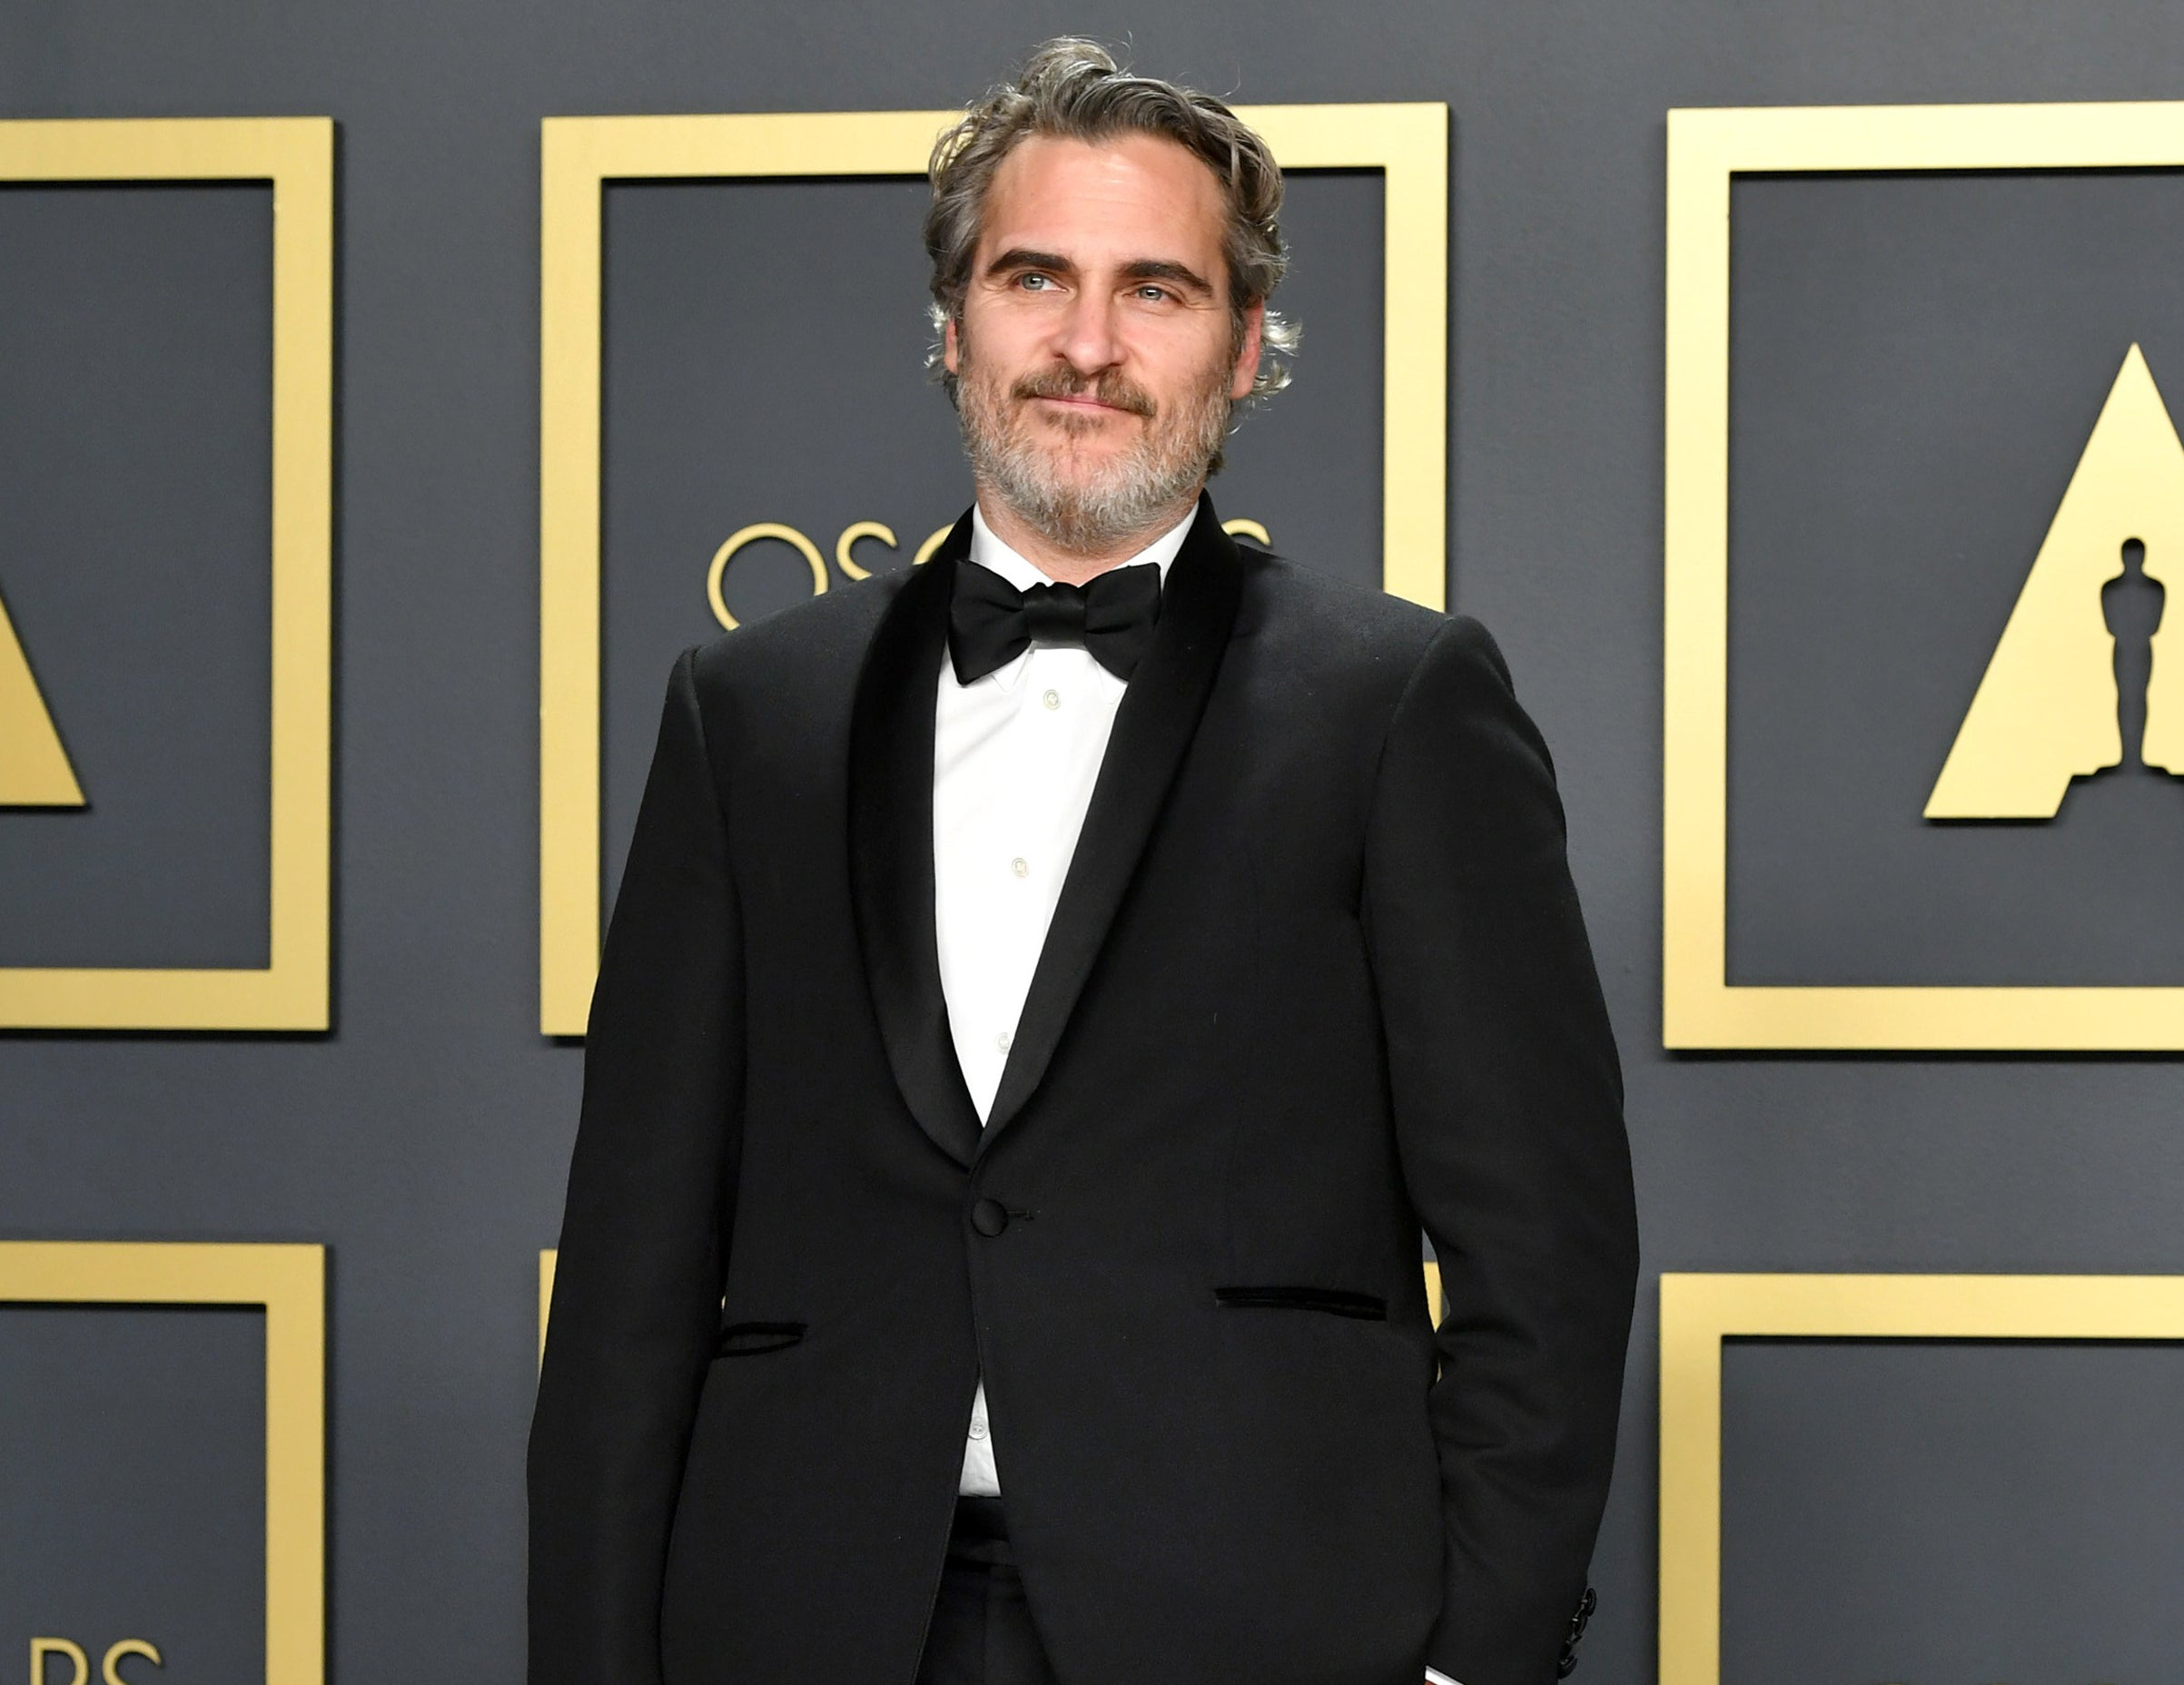 Joaquin stands backstage after accepting his award